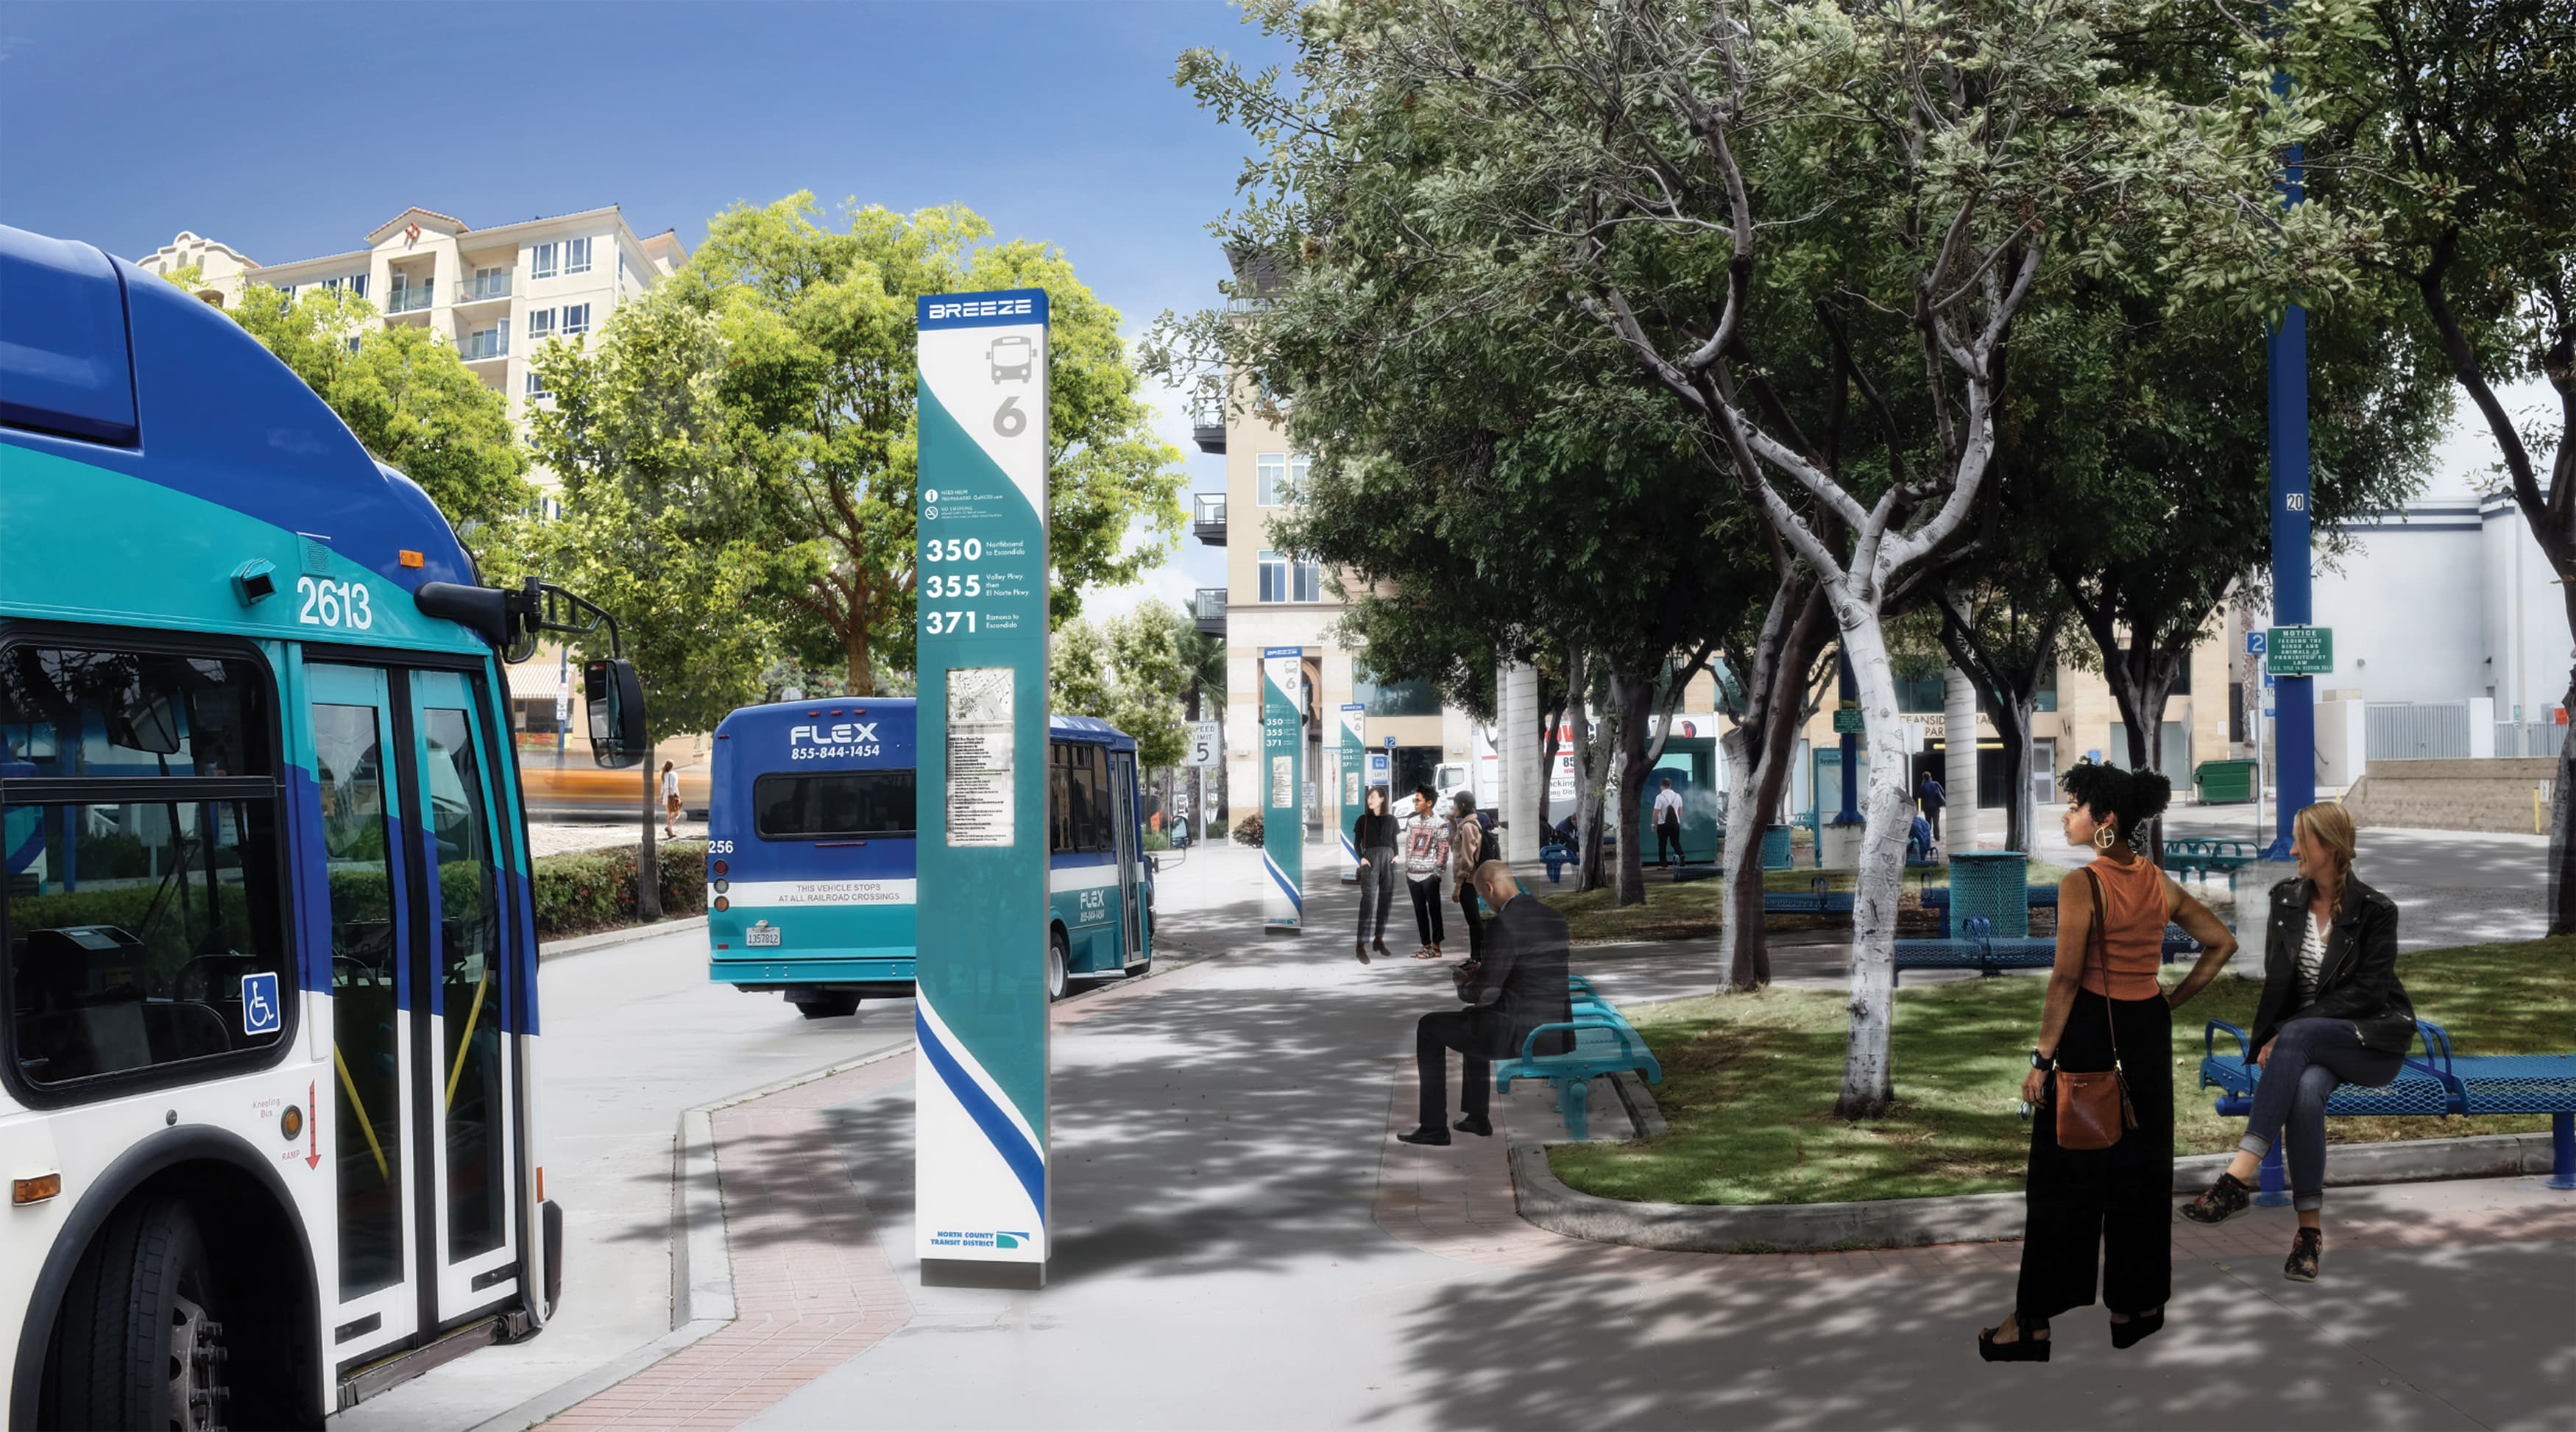 North County Transit District, the transit system in northern San Diego, California, worked with RSM Design to re-think what their transit system looks like. Wayfinding design and vehicular wayfinding.